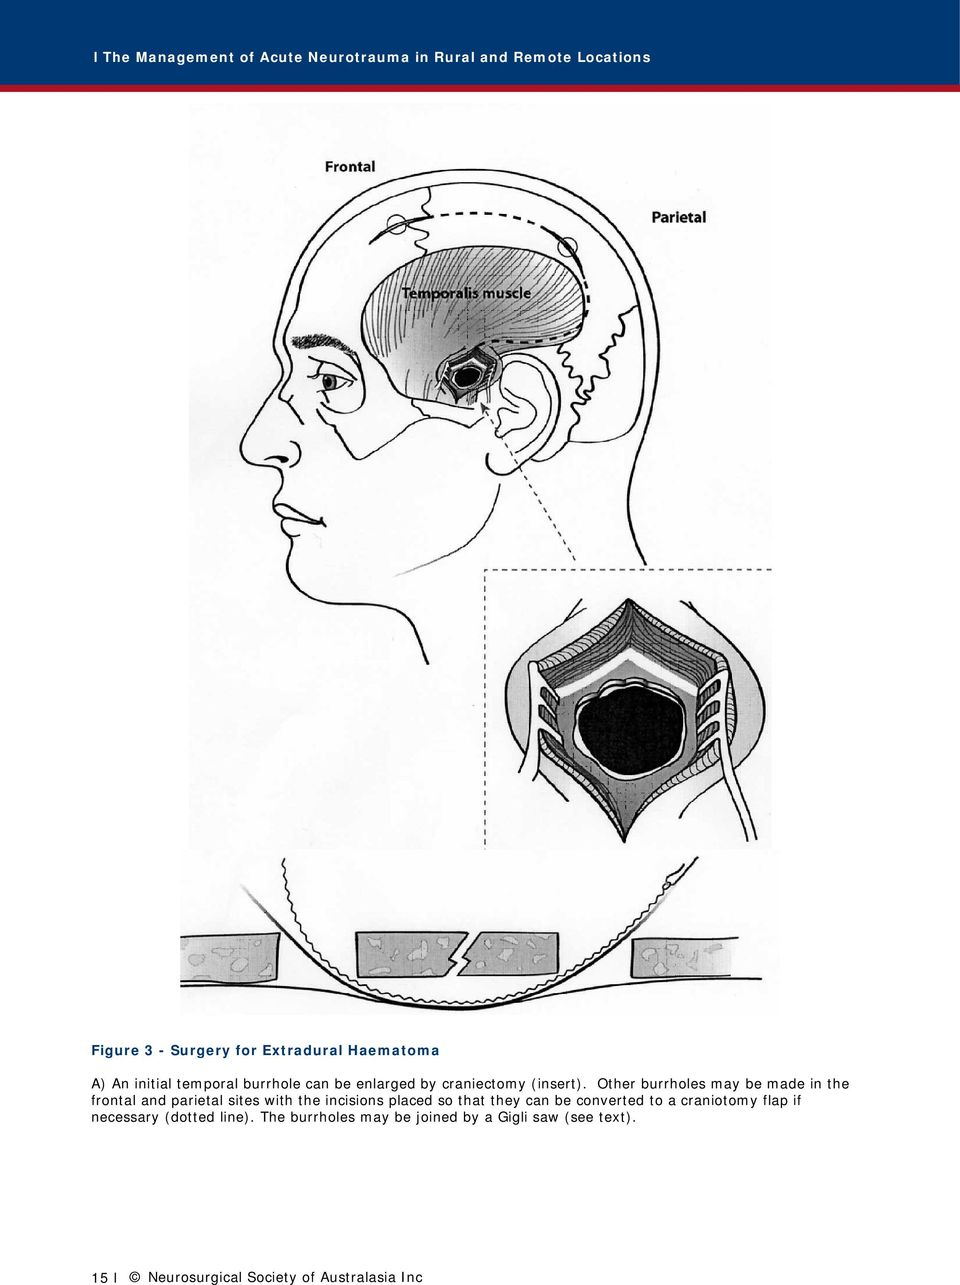 The Management of Acute Neurotrauma in Rural and Remote Locations A